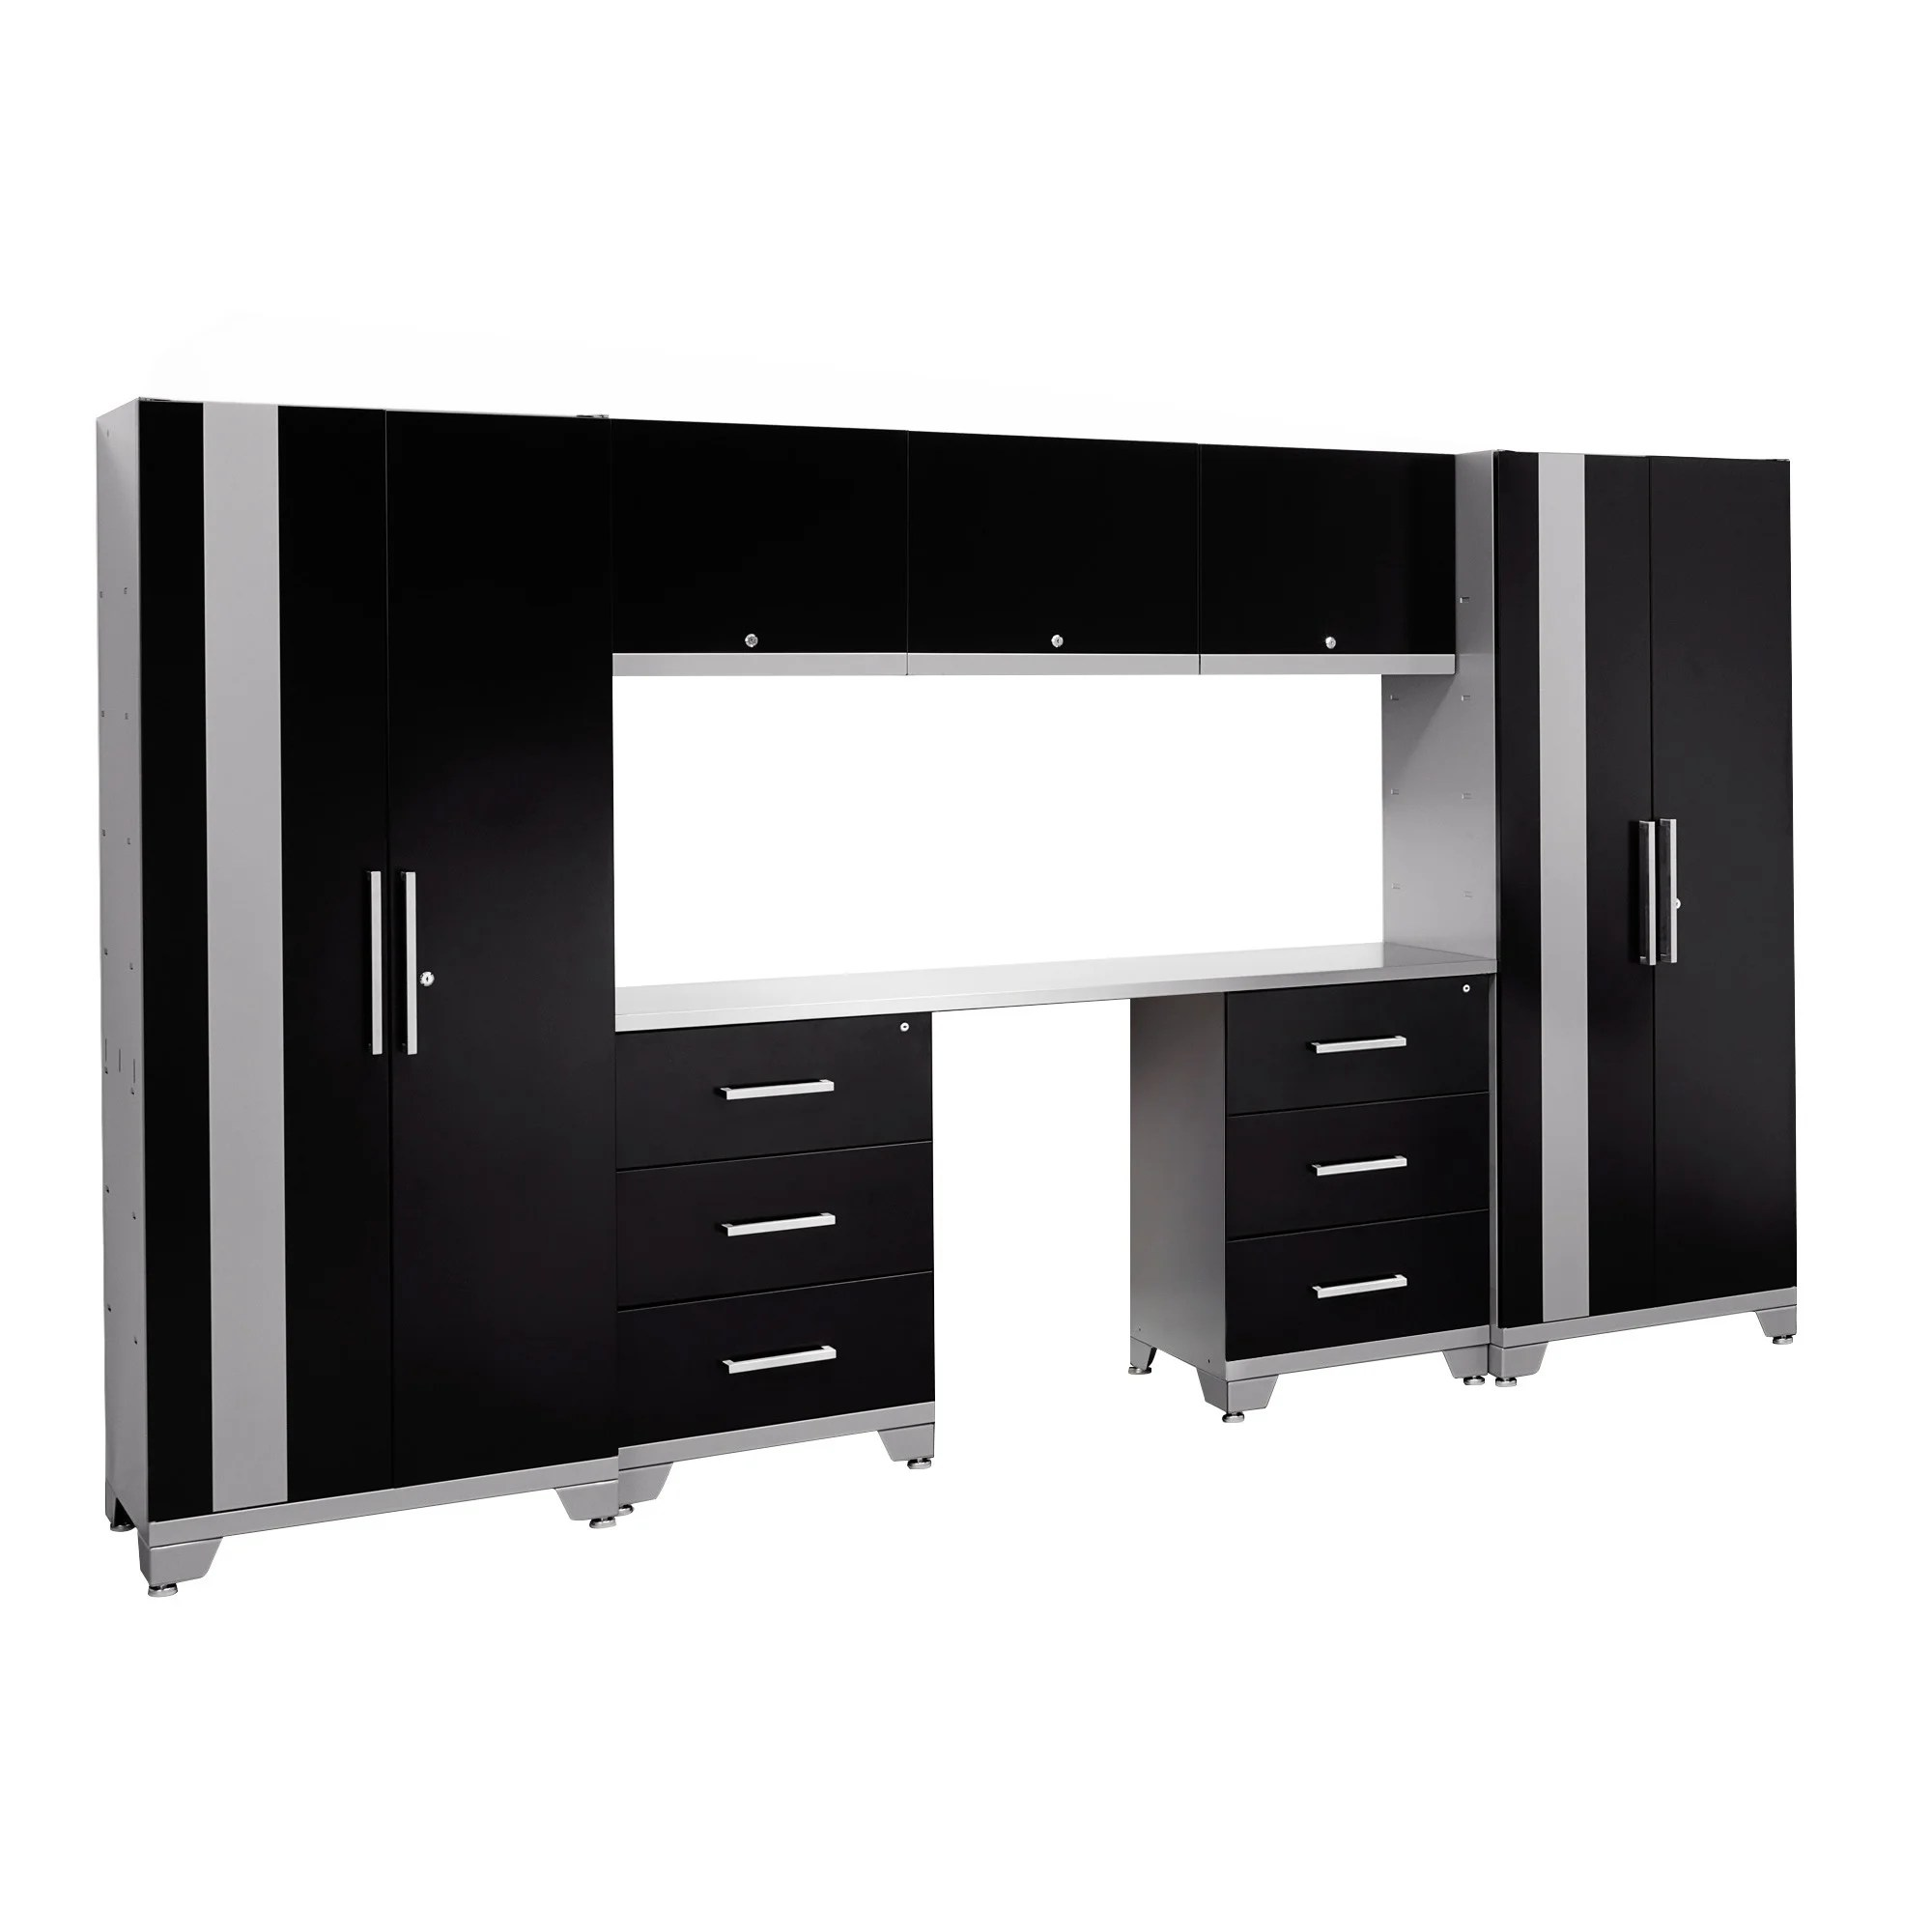 Garage Cabinets Overstock Newage Products Performance Series 8 Piece Cabinet Set